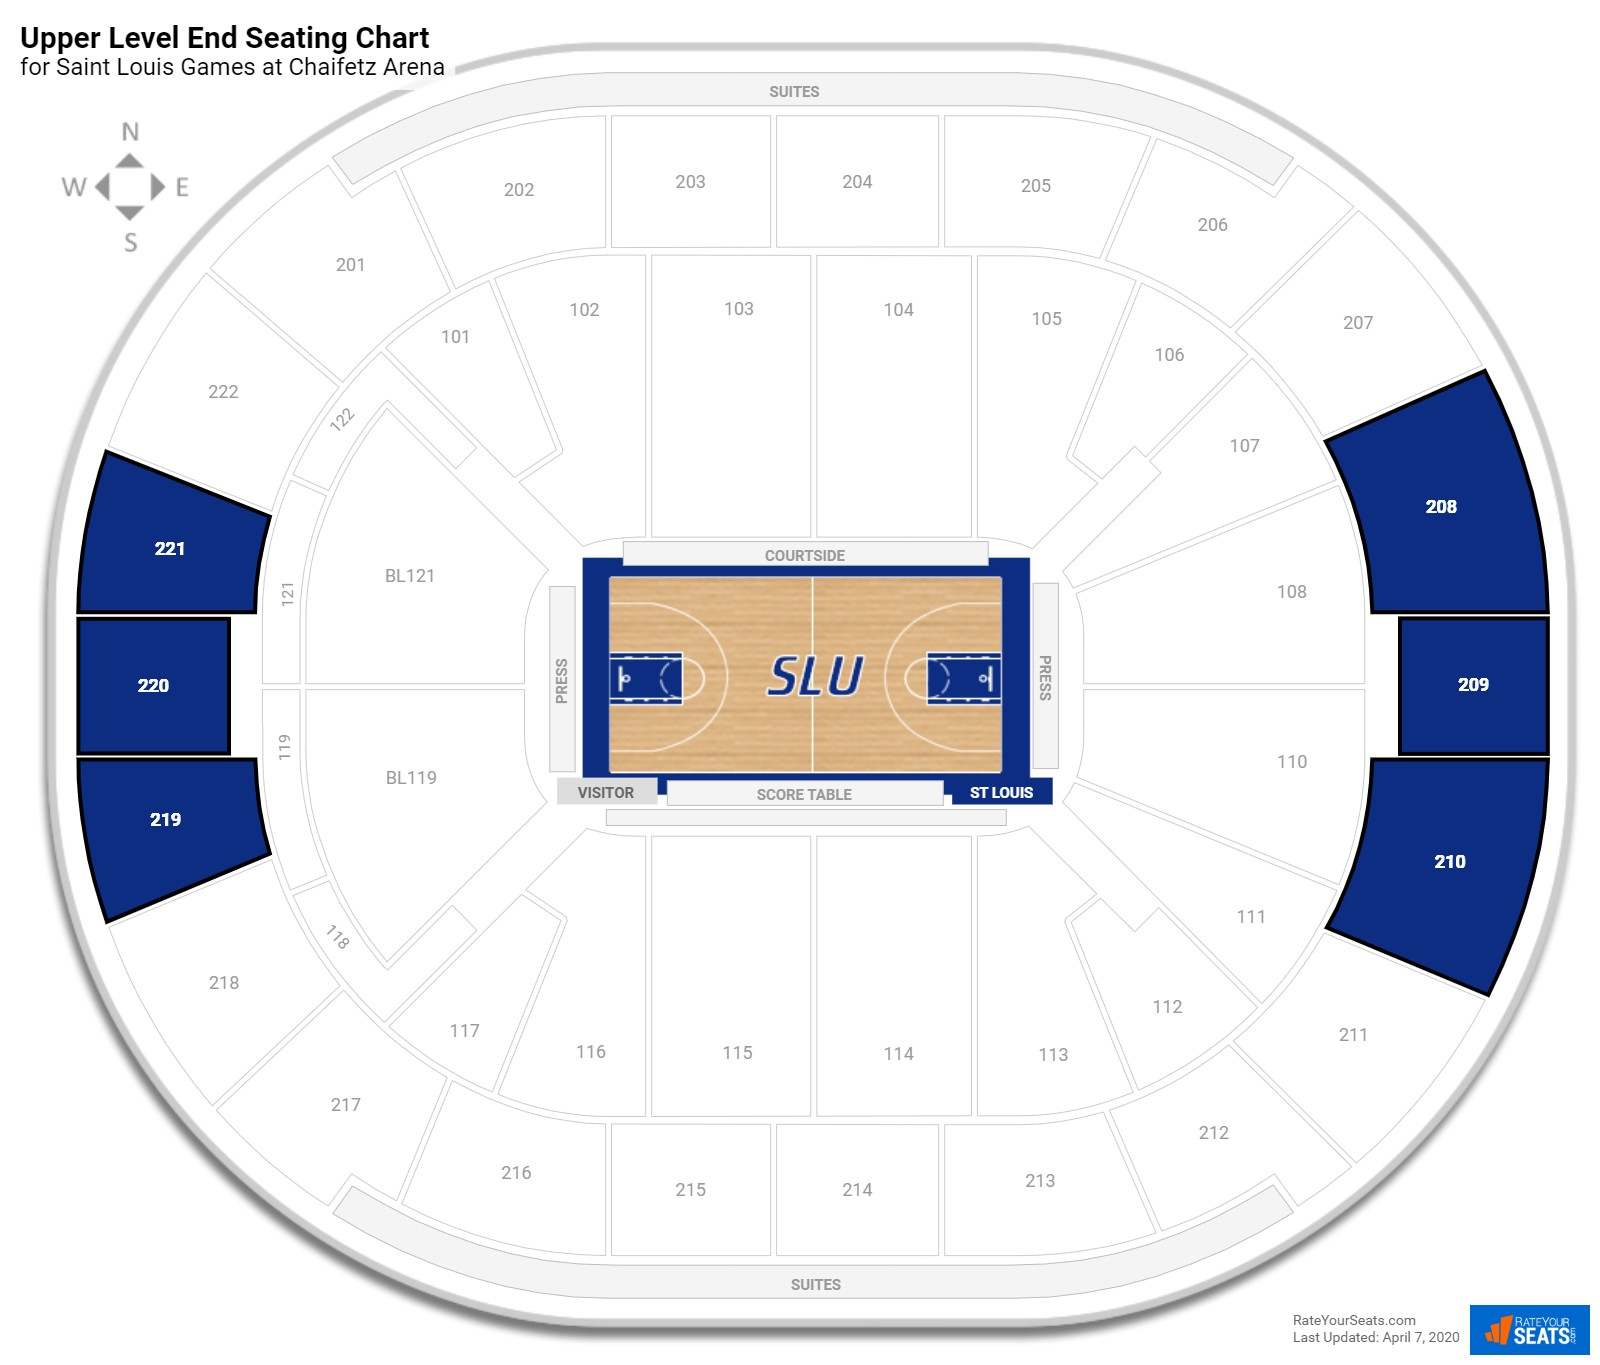 Chaifetz Arena Upper Level End seating chart